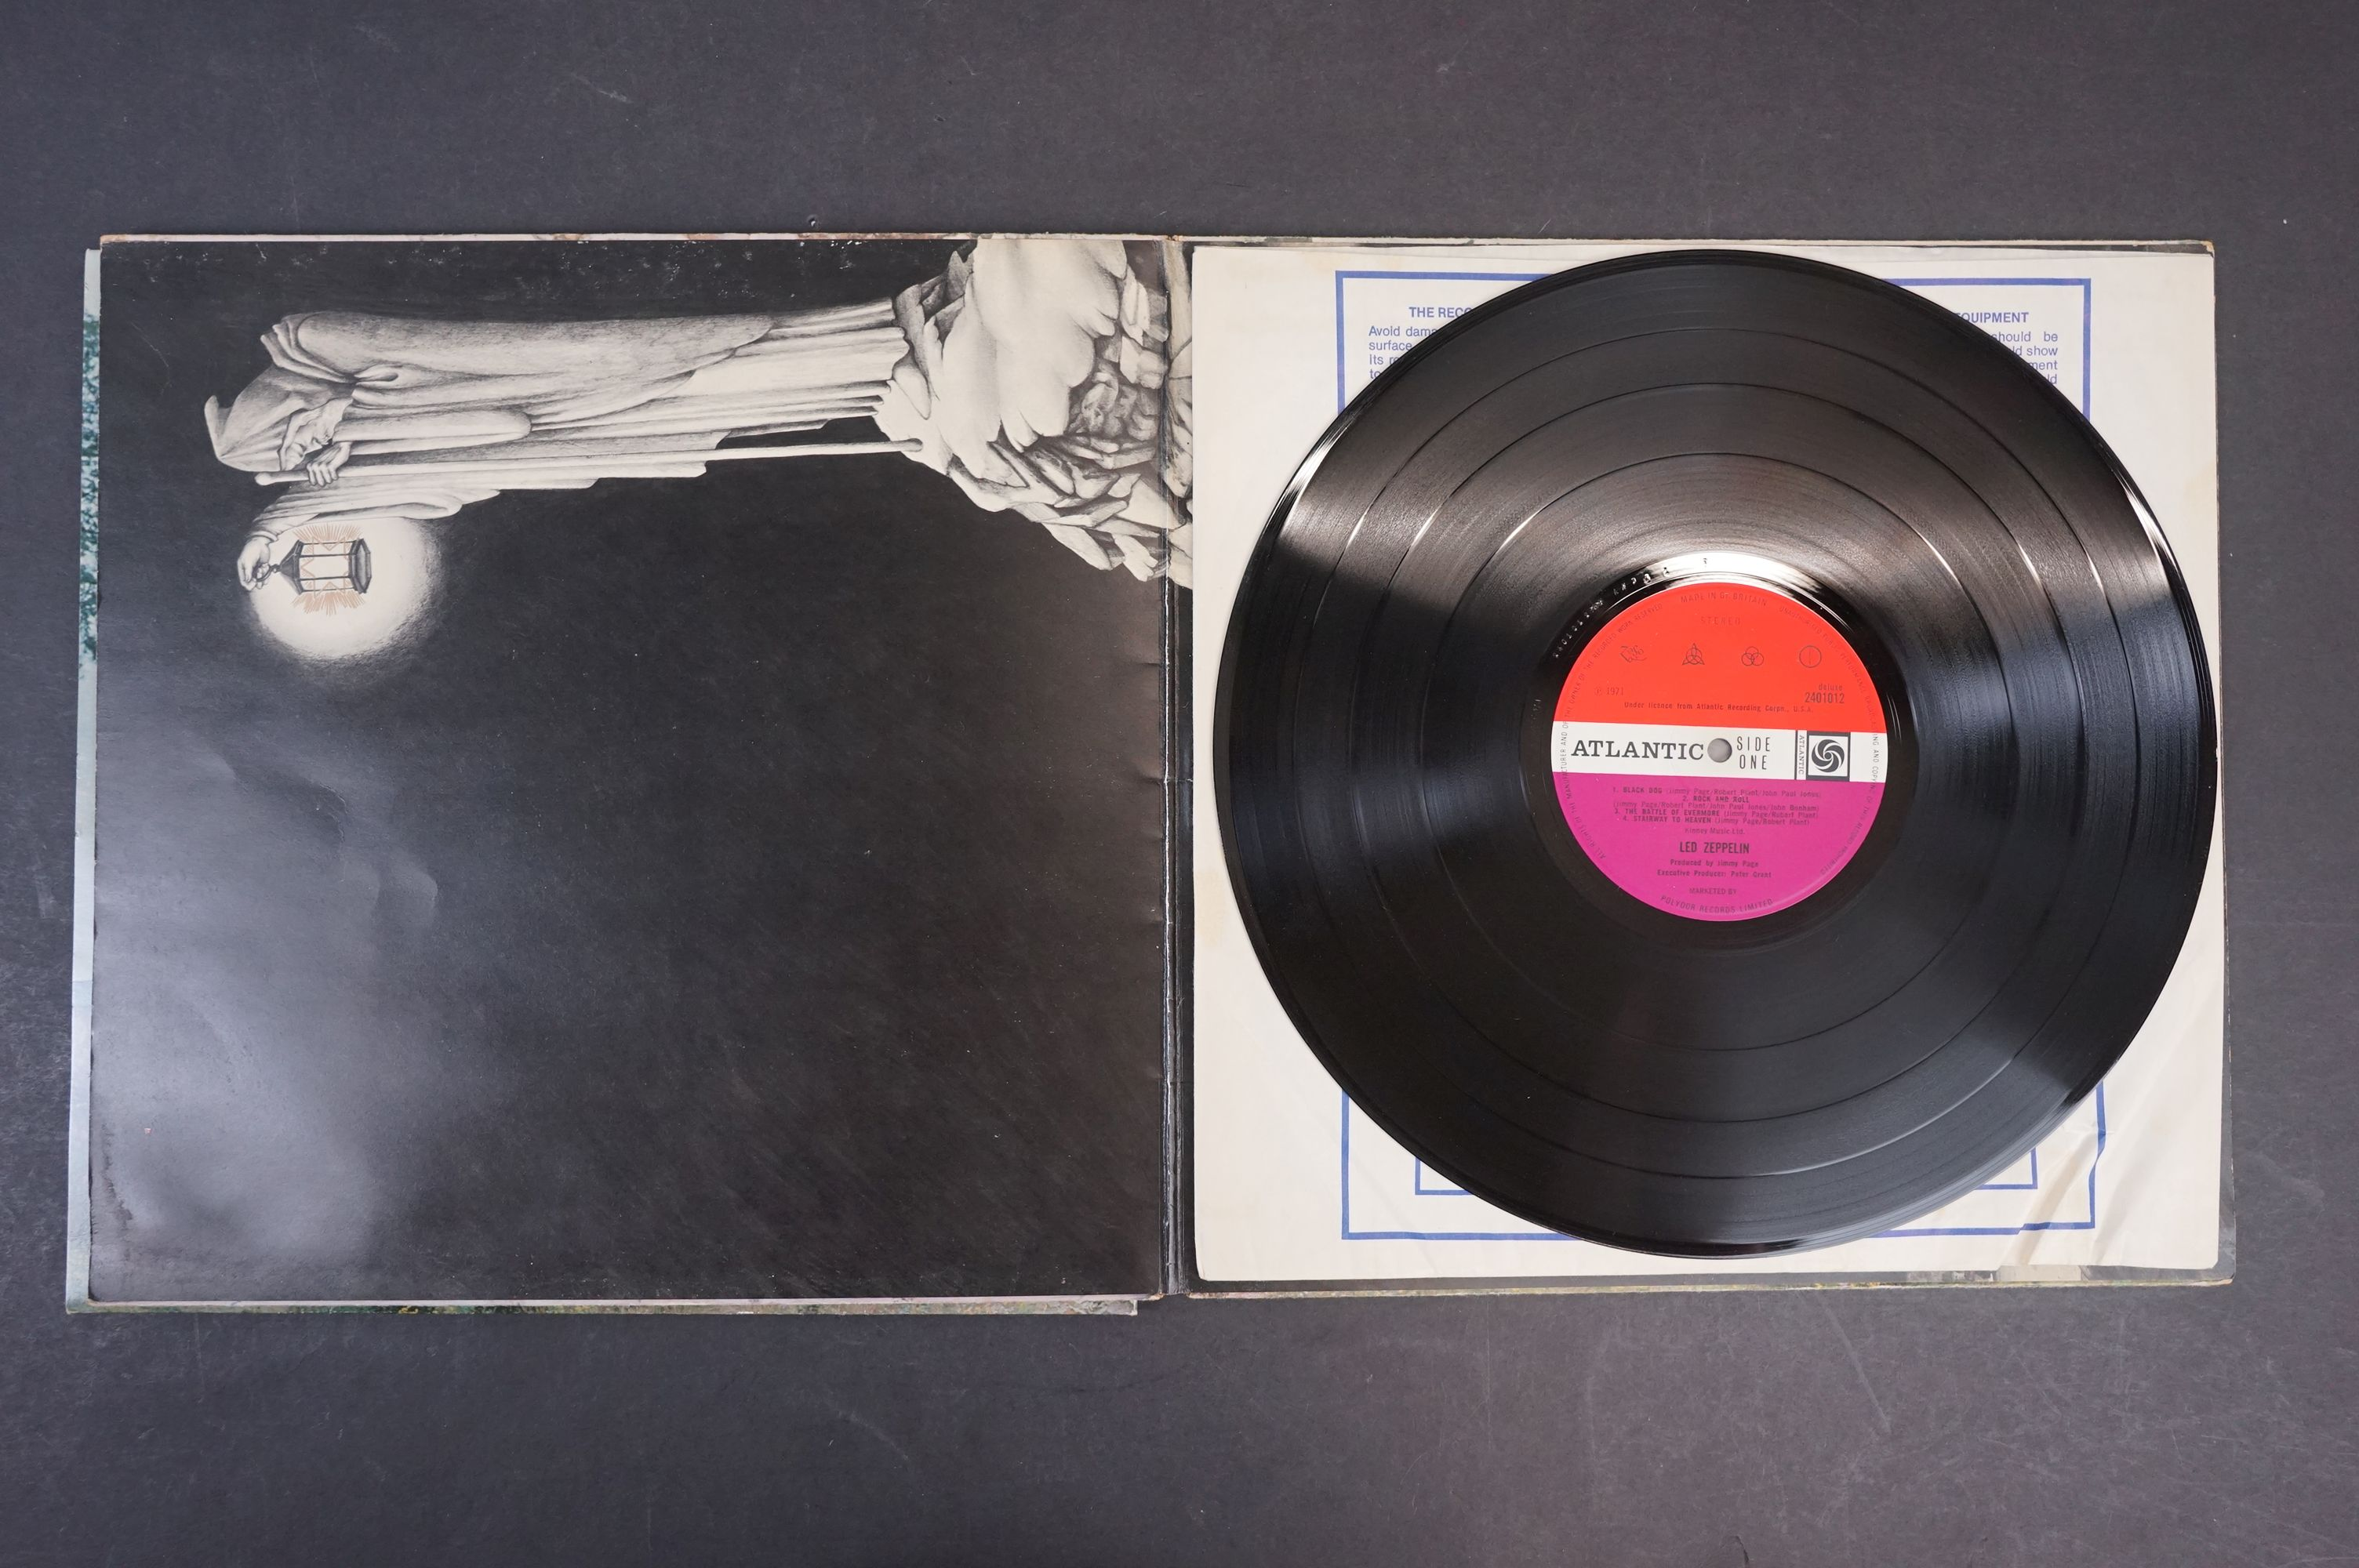 Vinyl - Six Led Zeppelin LPs to include In Through the Outdoor (cover D) SSK59410, Coda 790051, 2 - Image 12 of 17